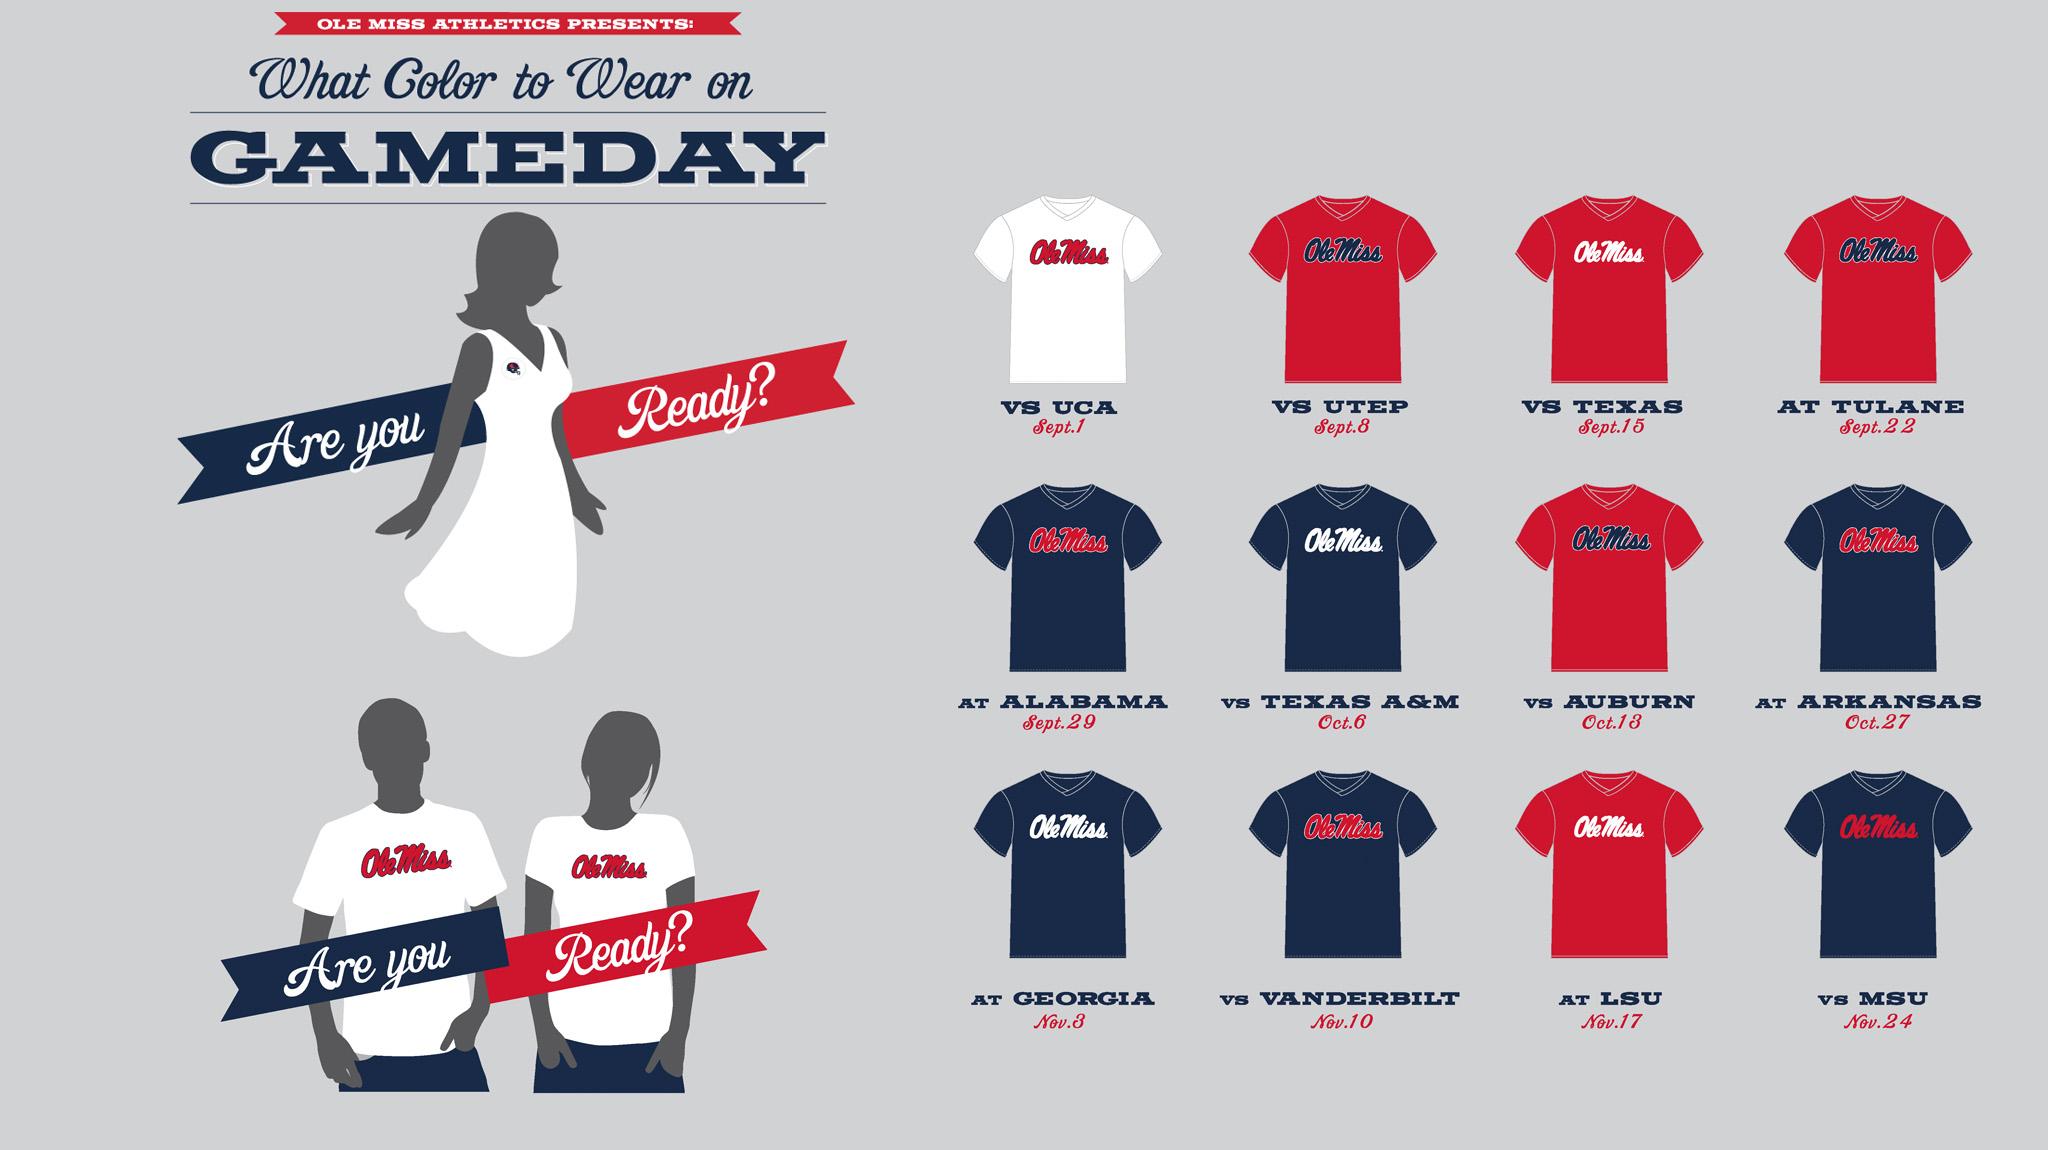 Ole miss gameday colors 2015 - White